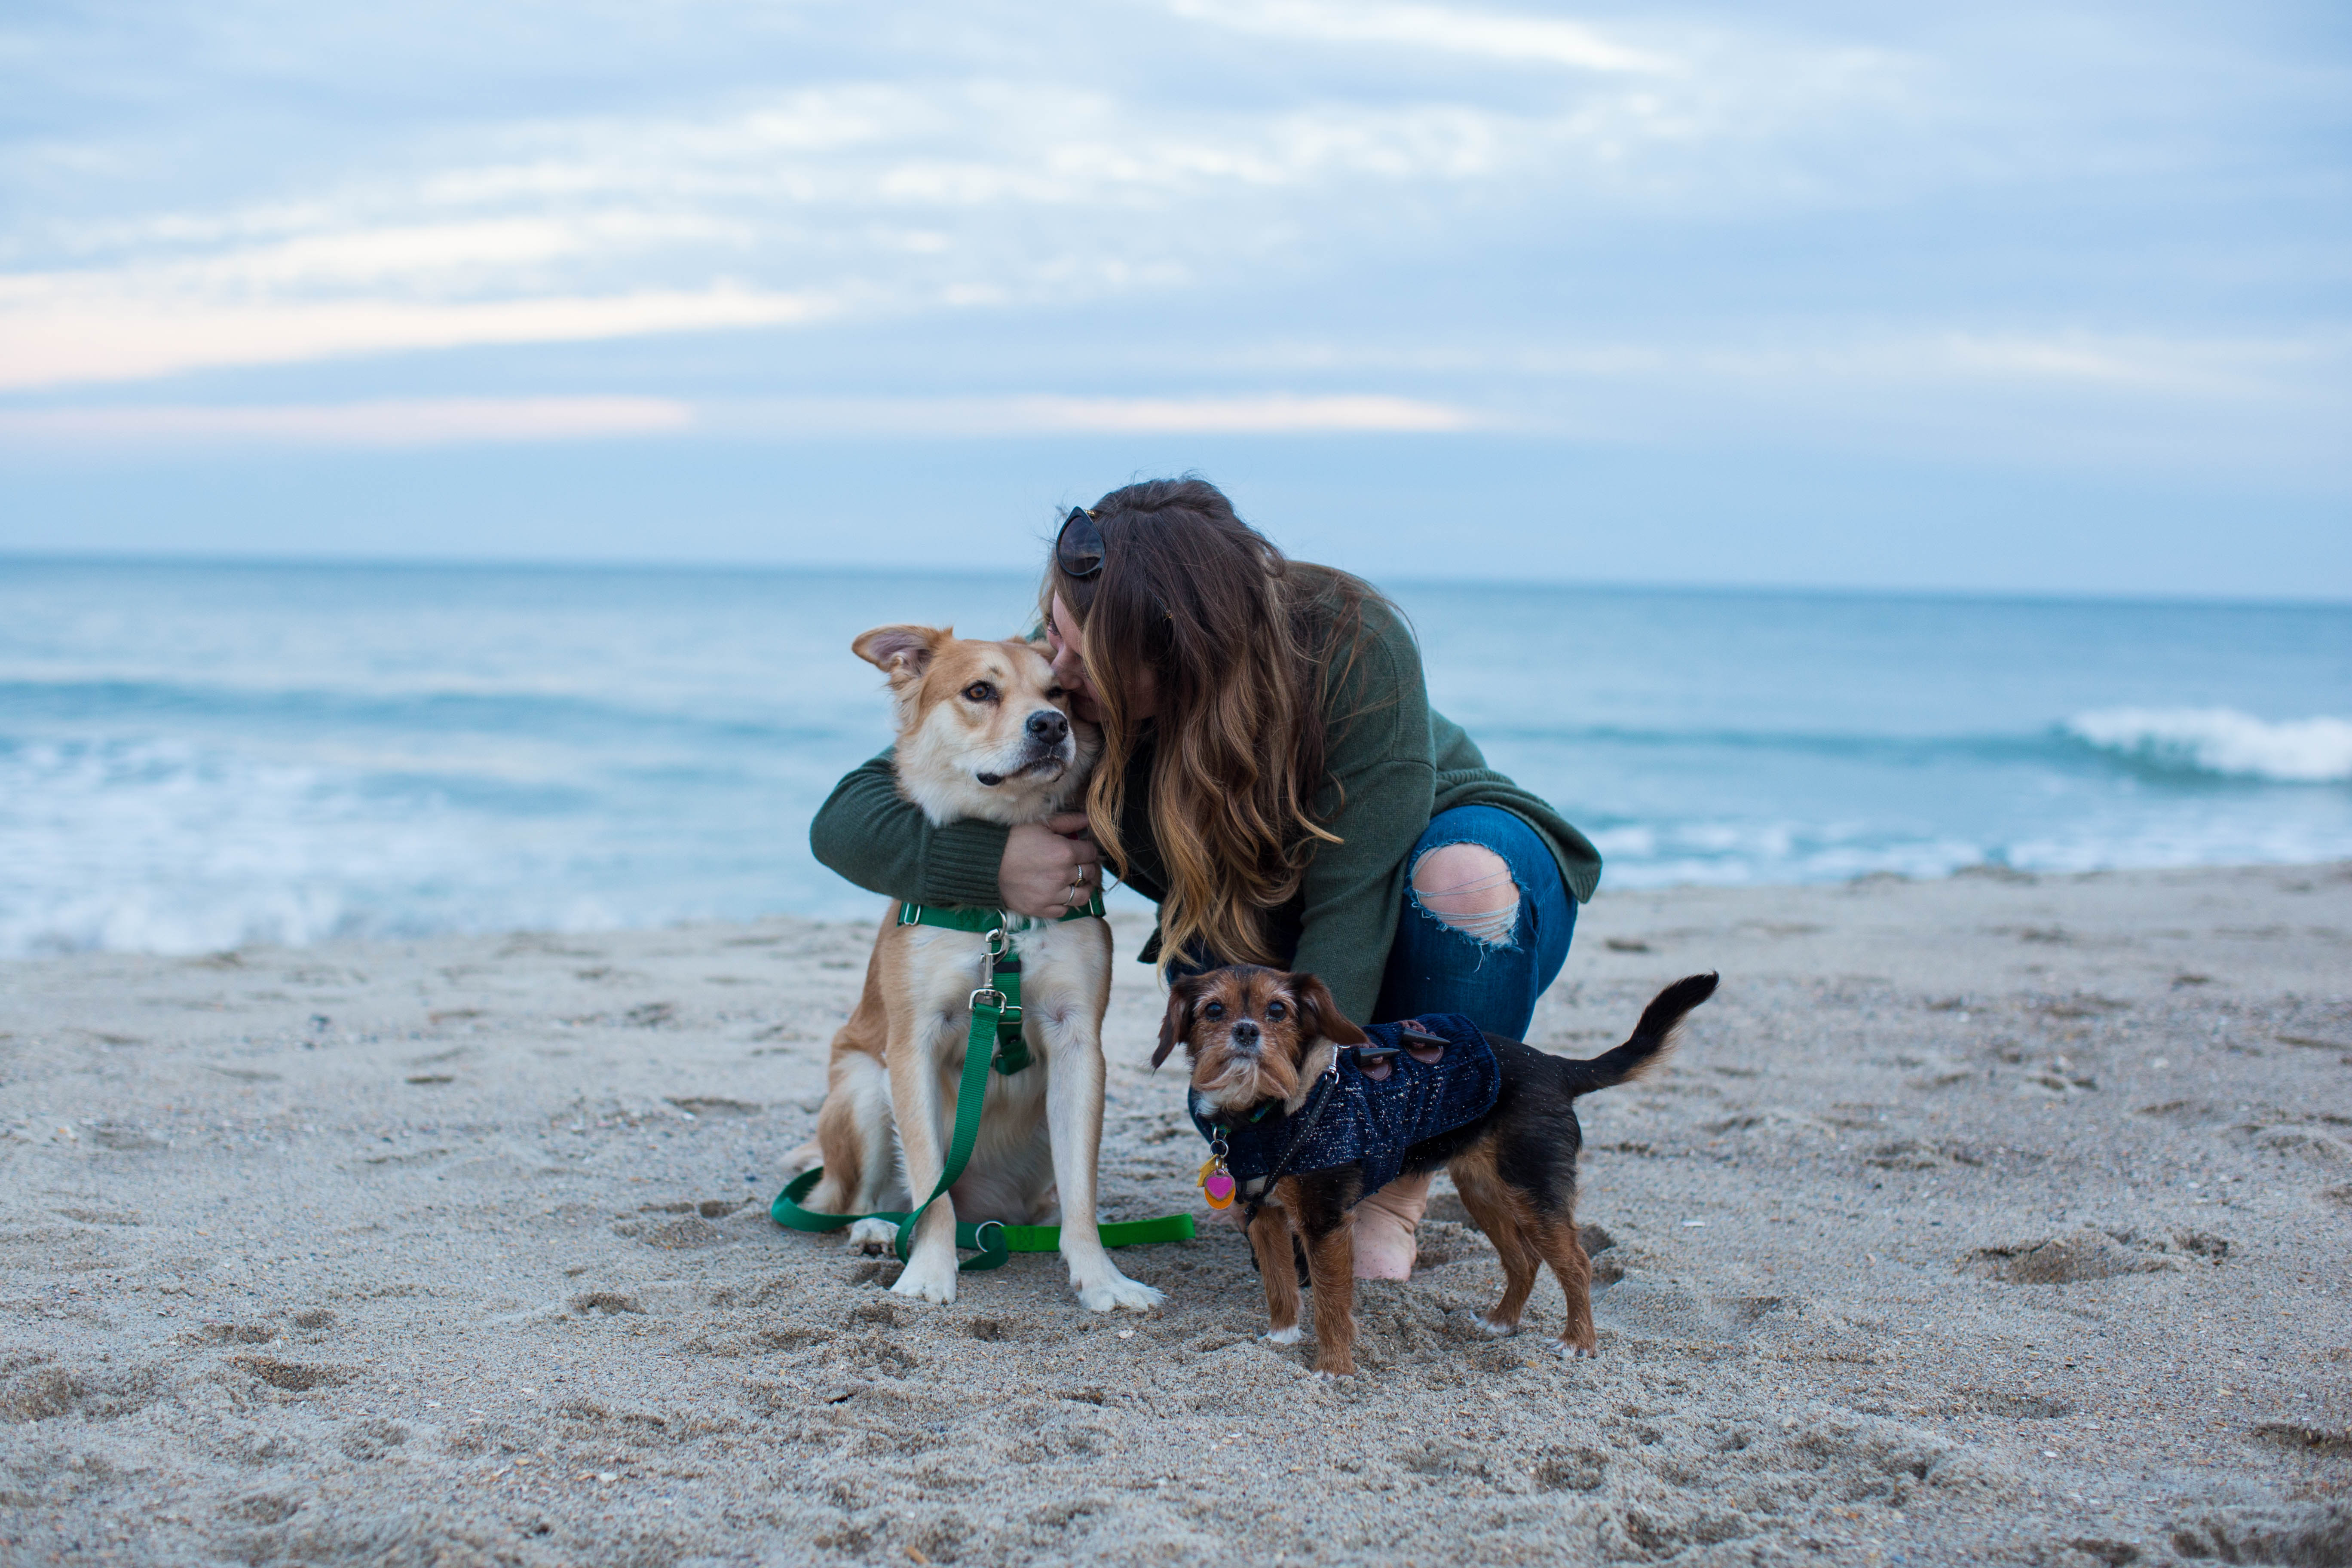 5 Reasons Why You Should Visit the Beach In Winter by NC blogger Coffee Beans and Bobby Pins